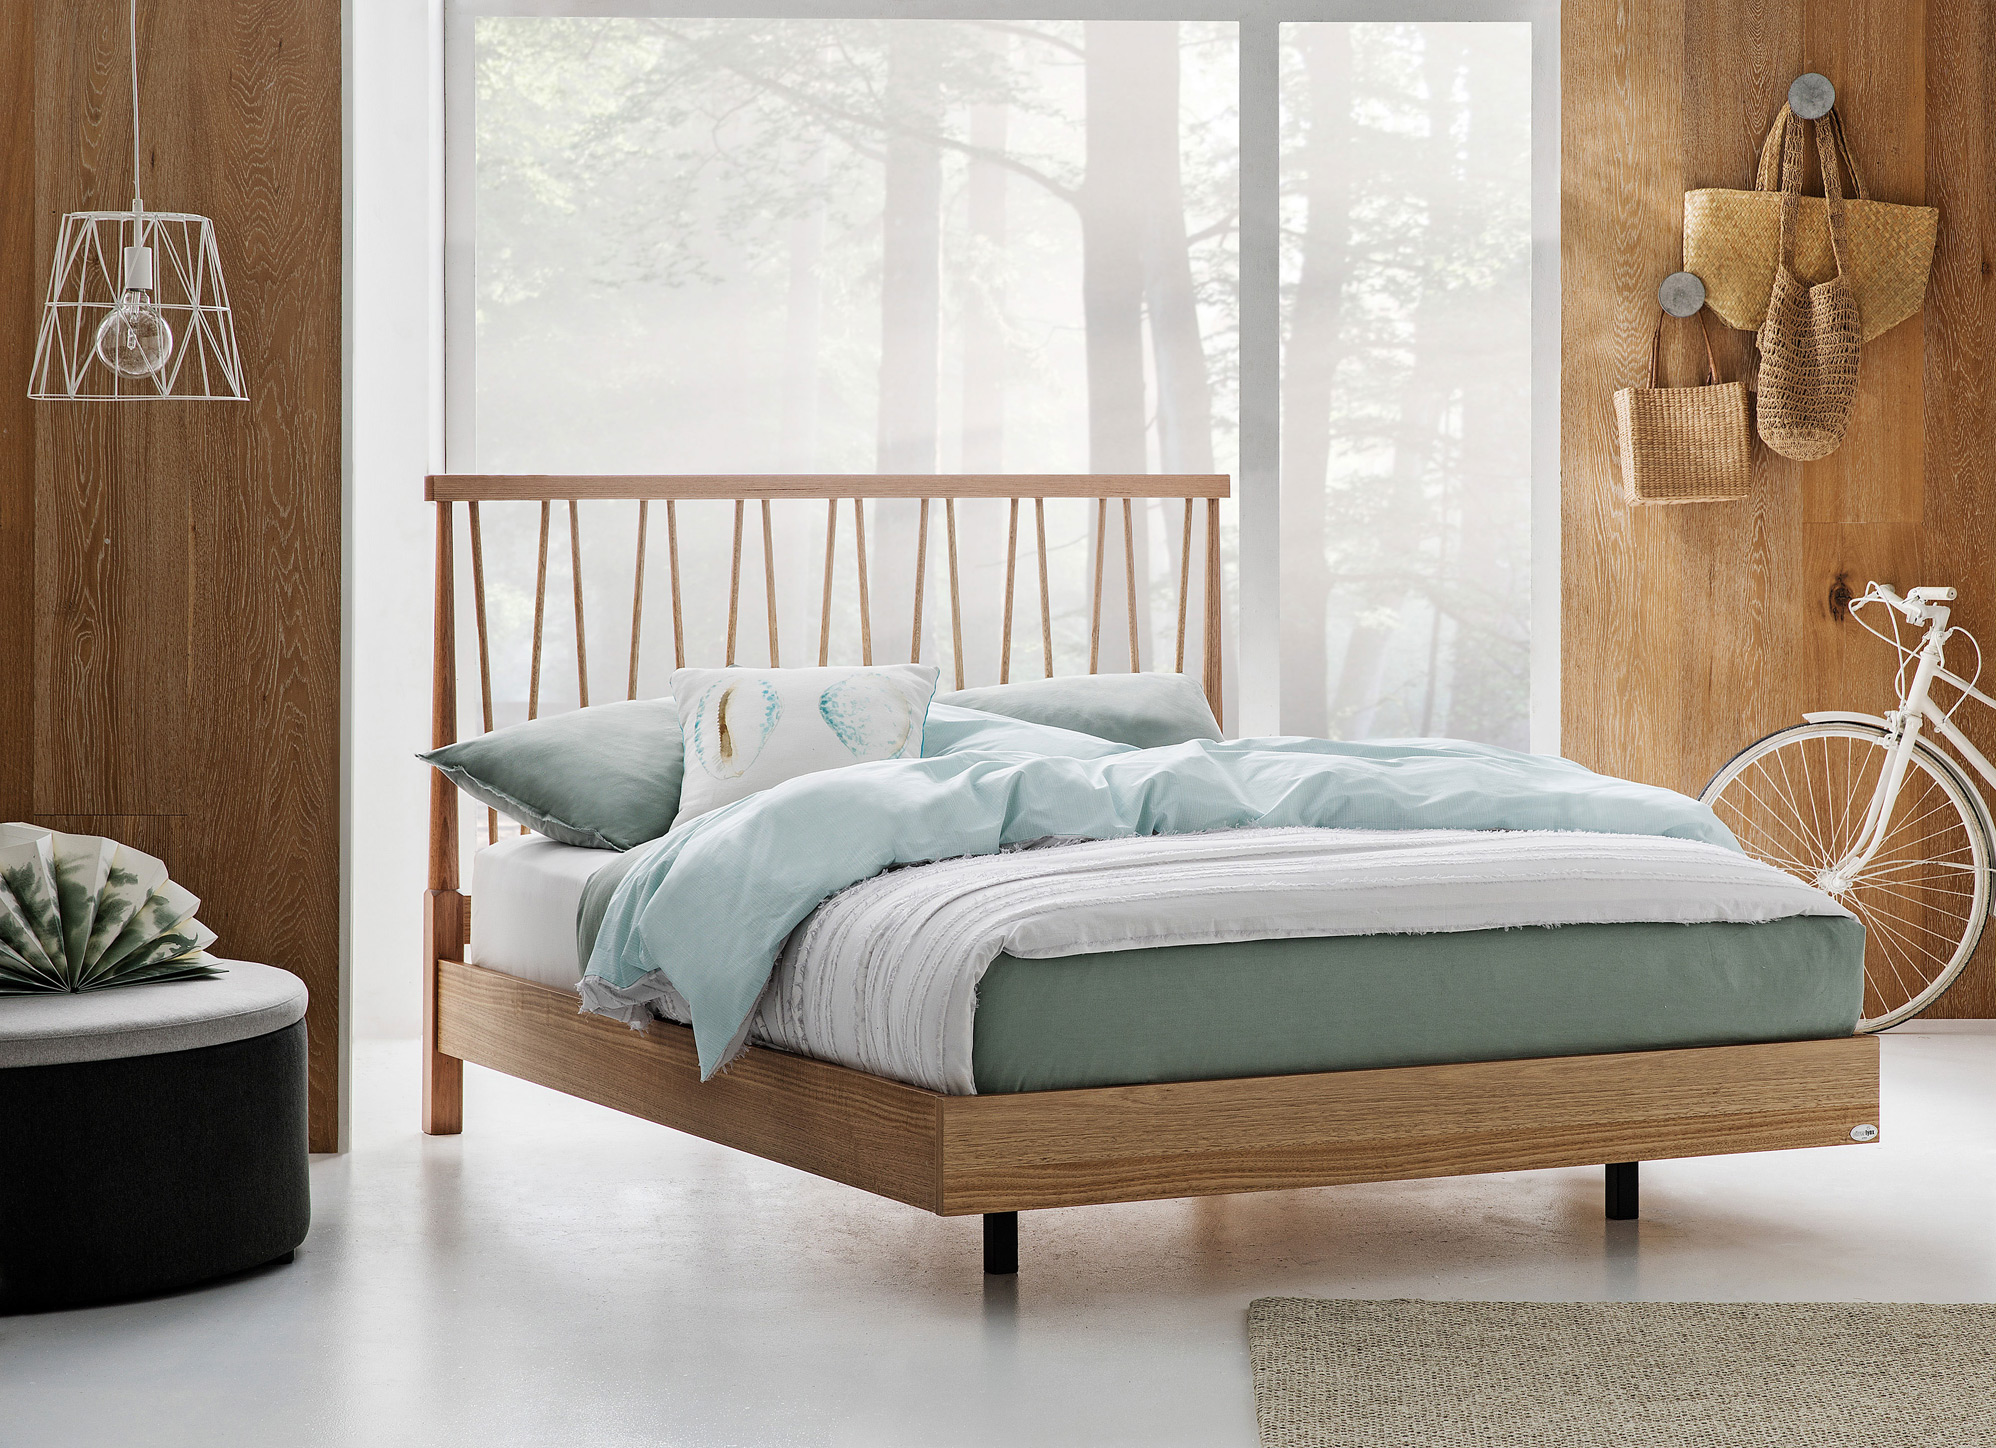 Domayne Beds Catalogue Summer Styles Youll Love For Your Home Domayne Style